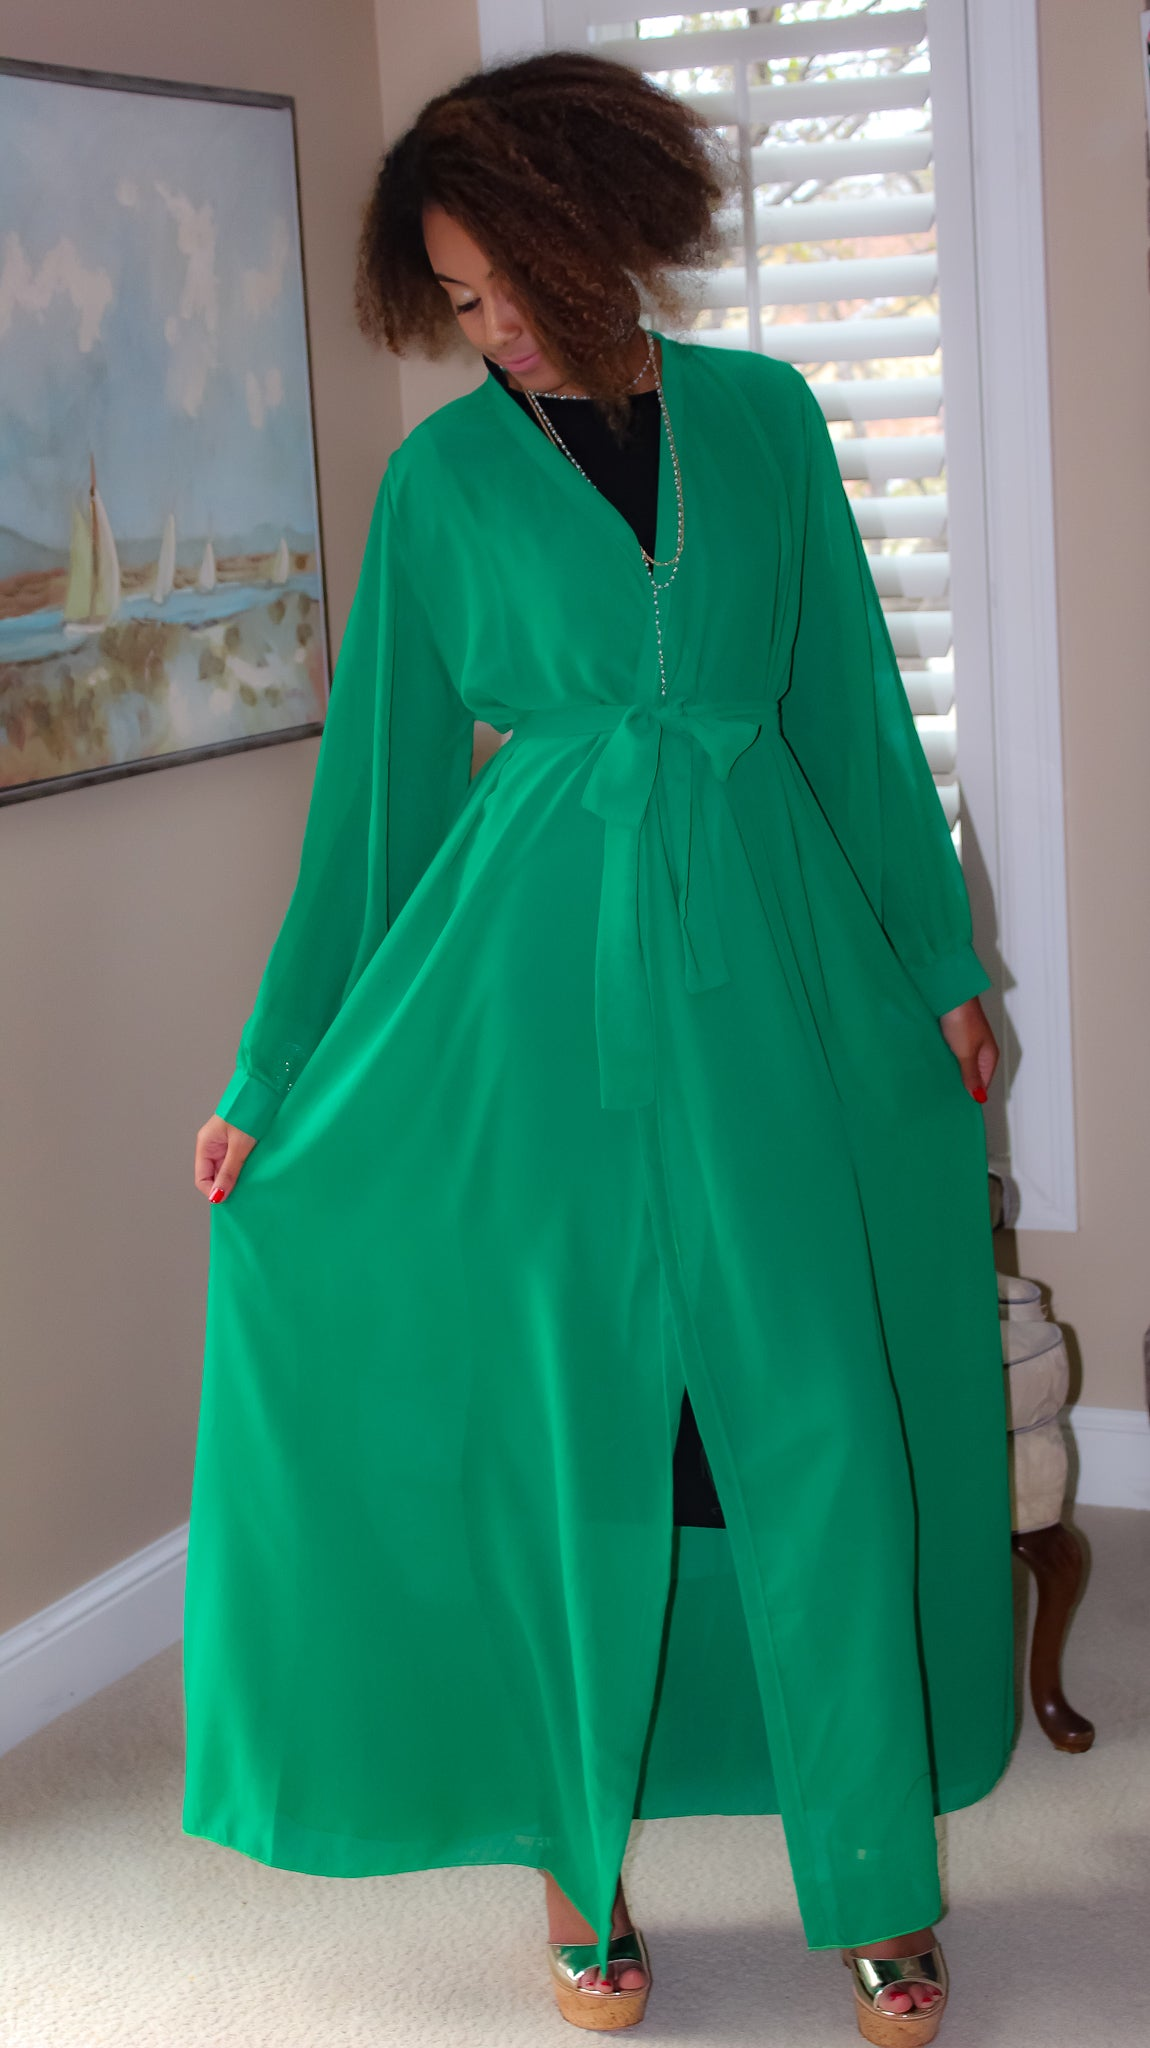 Green summer Dress SOLD OUT